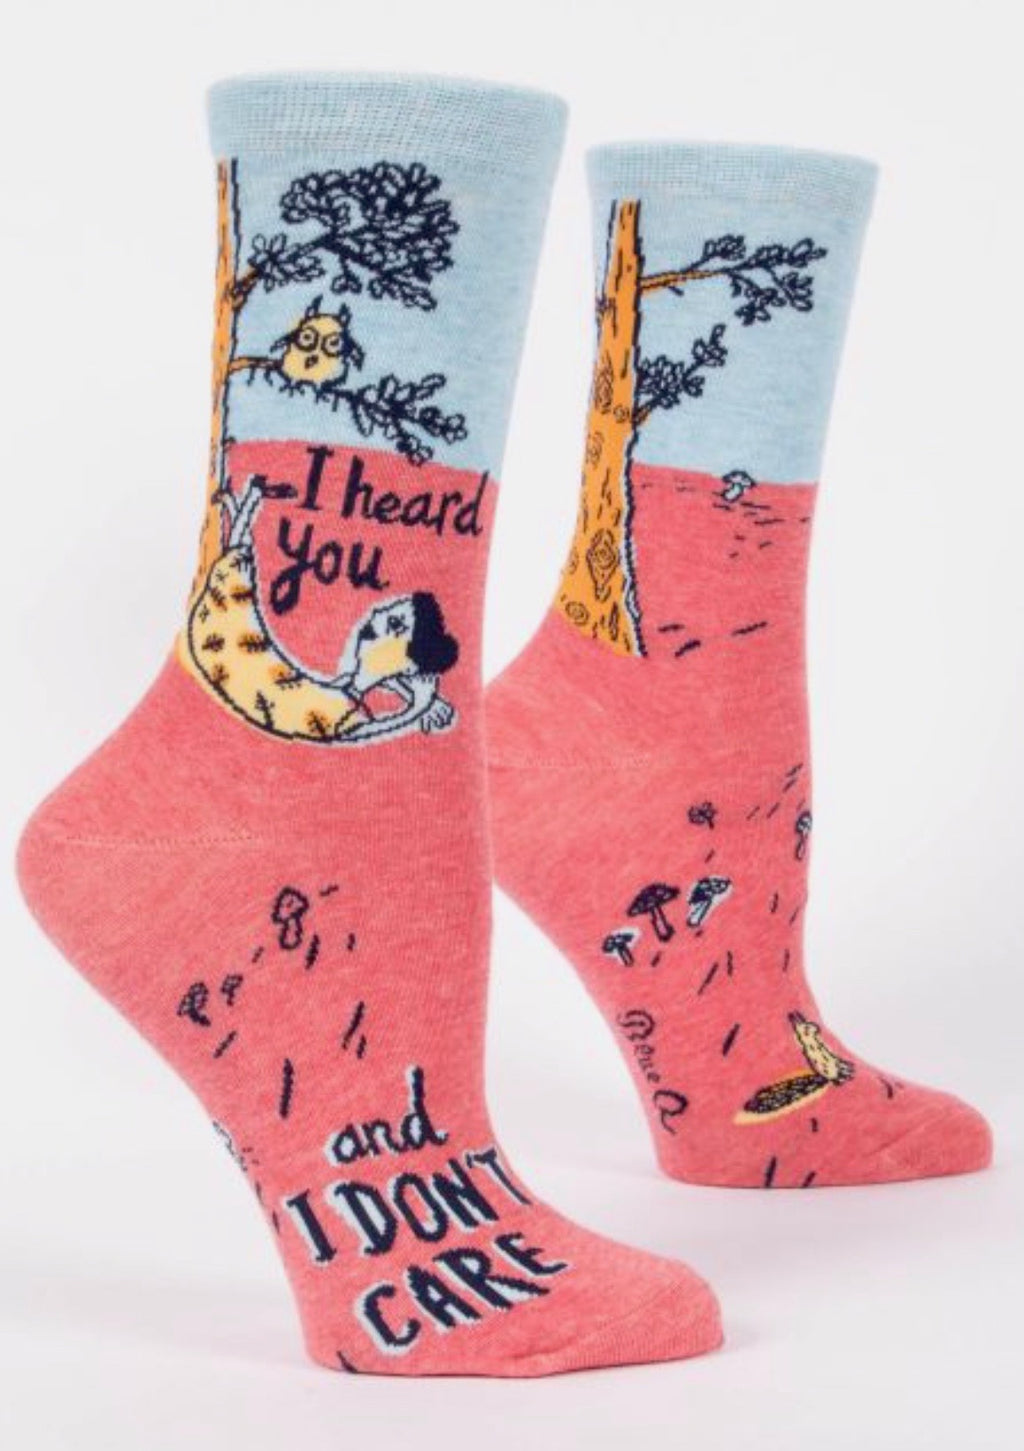 blue-q-SW479-i-heard-you-don't-care-crew-socks-pink